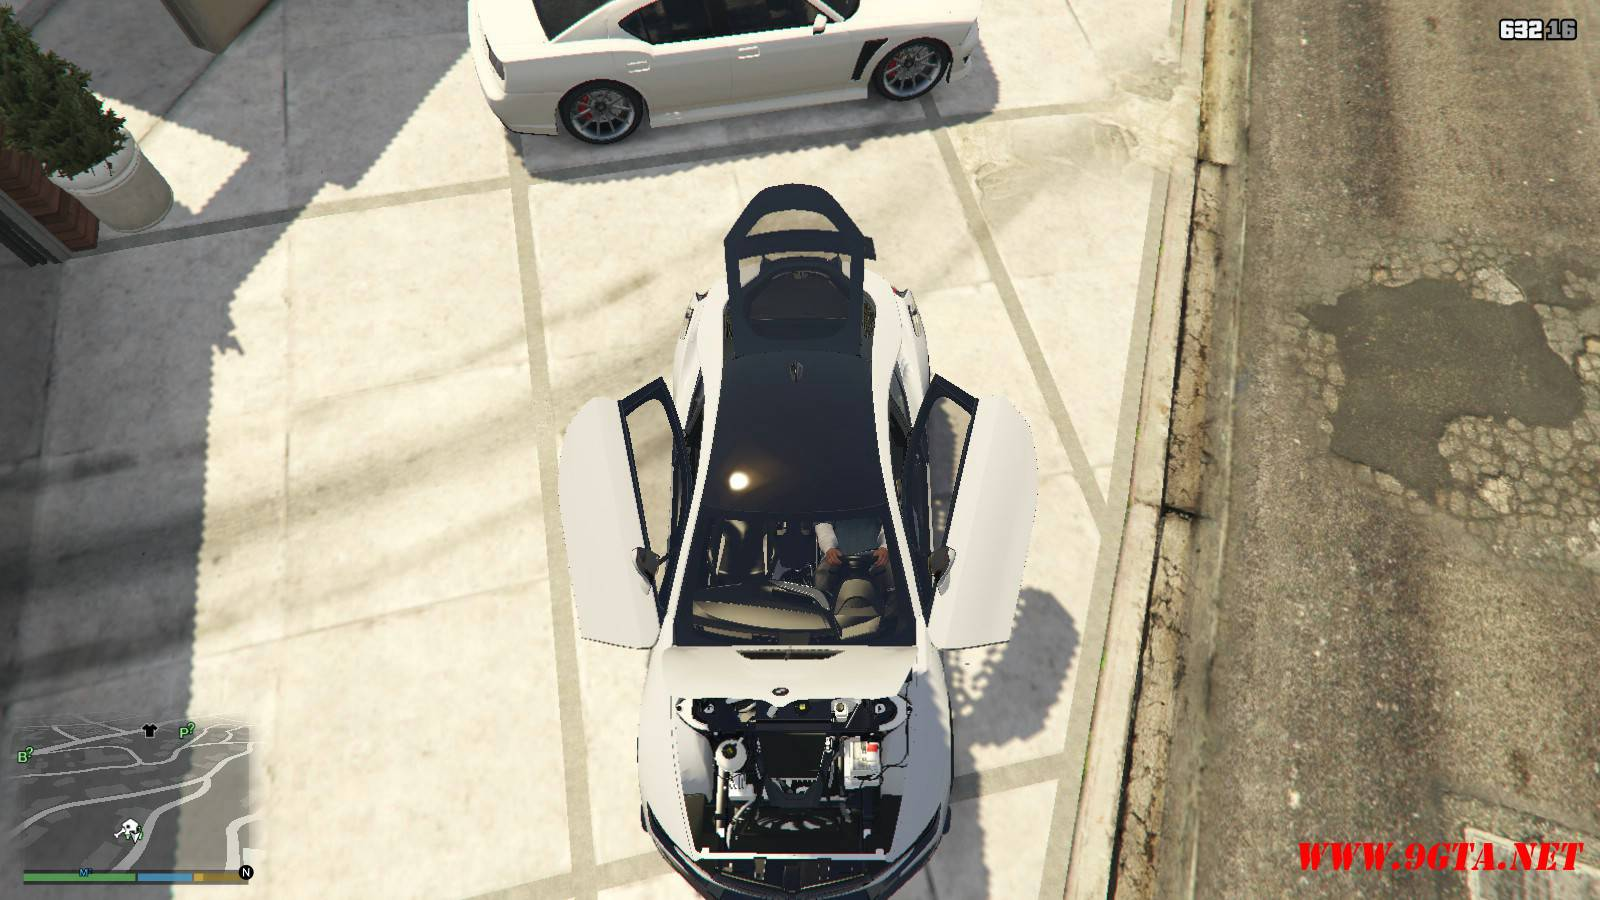 BMW i8 AC Schinitzer ACS8 Mod For GTA5 (17)